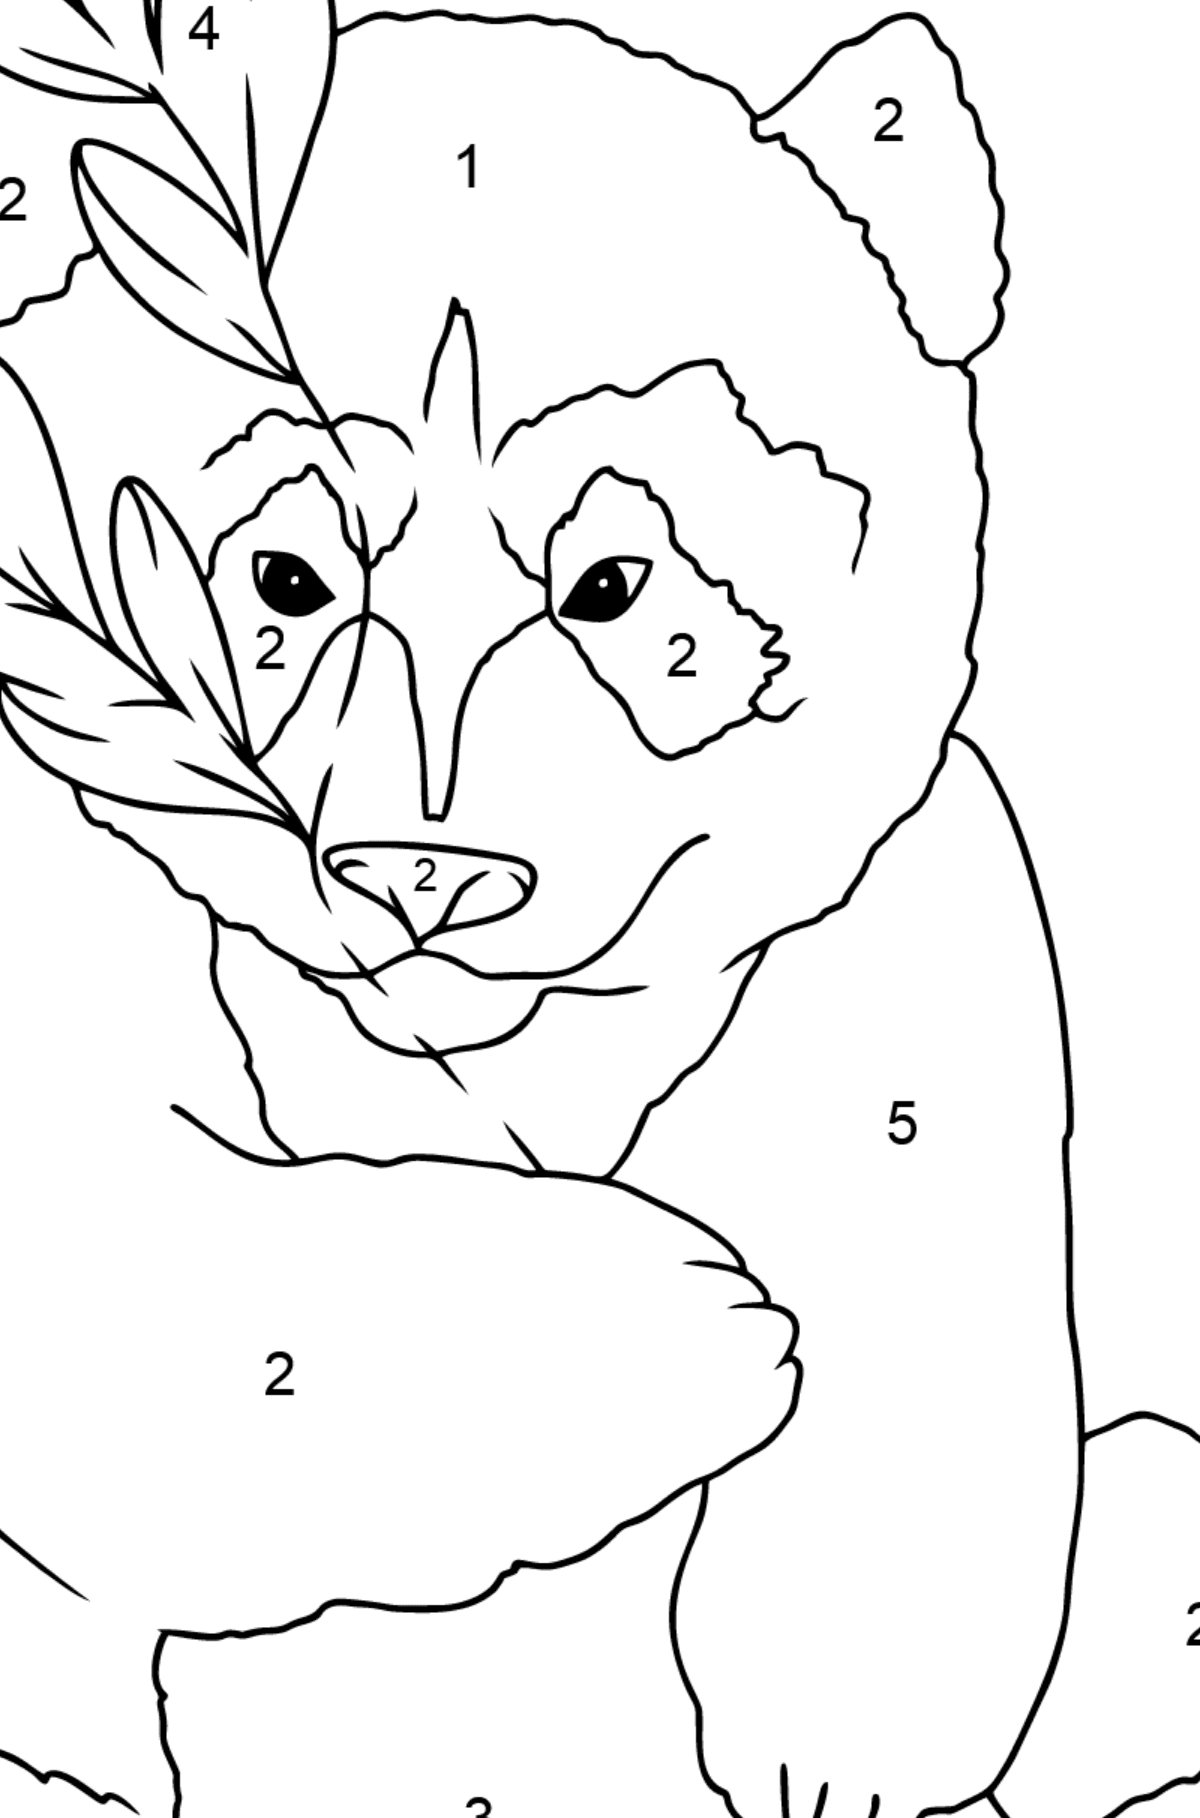 Coloring Page - A Panda is Hugging Bamboo Leaves - Coloring by Numbers for Children